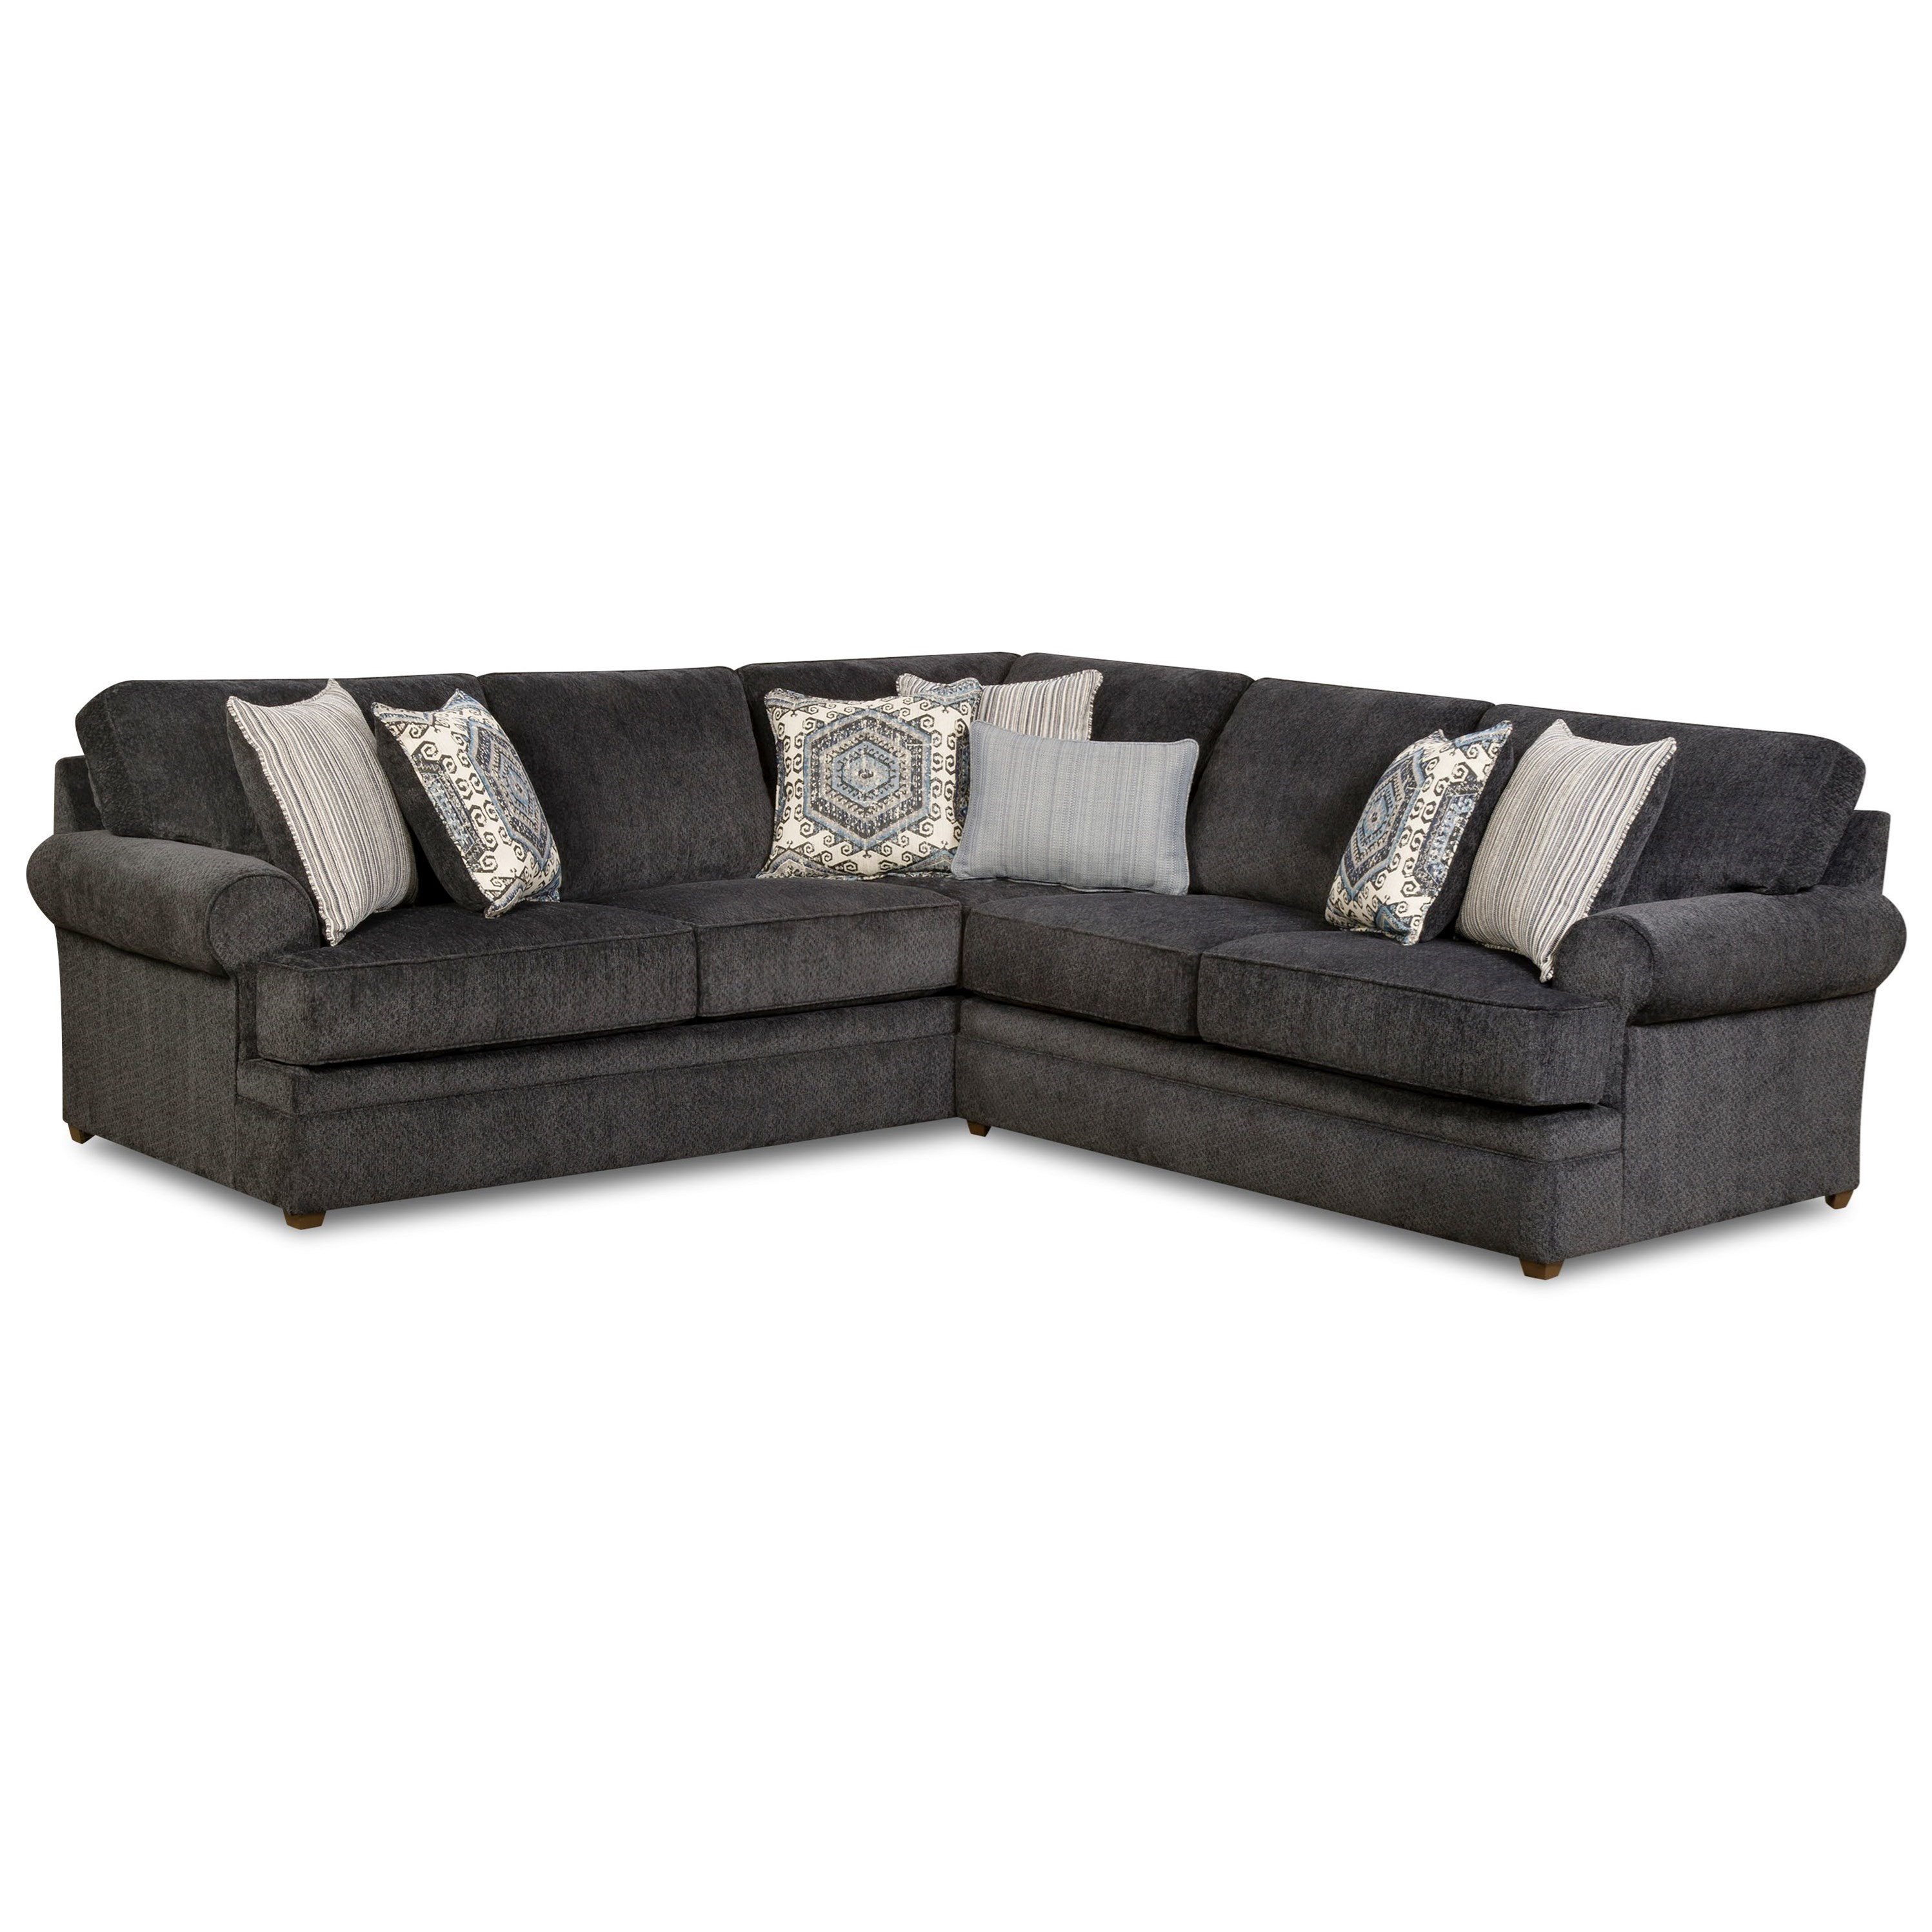 8530 br transitional sectional sofa